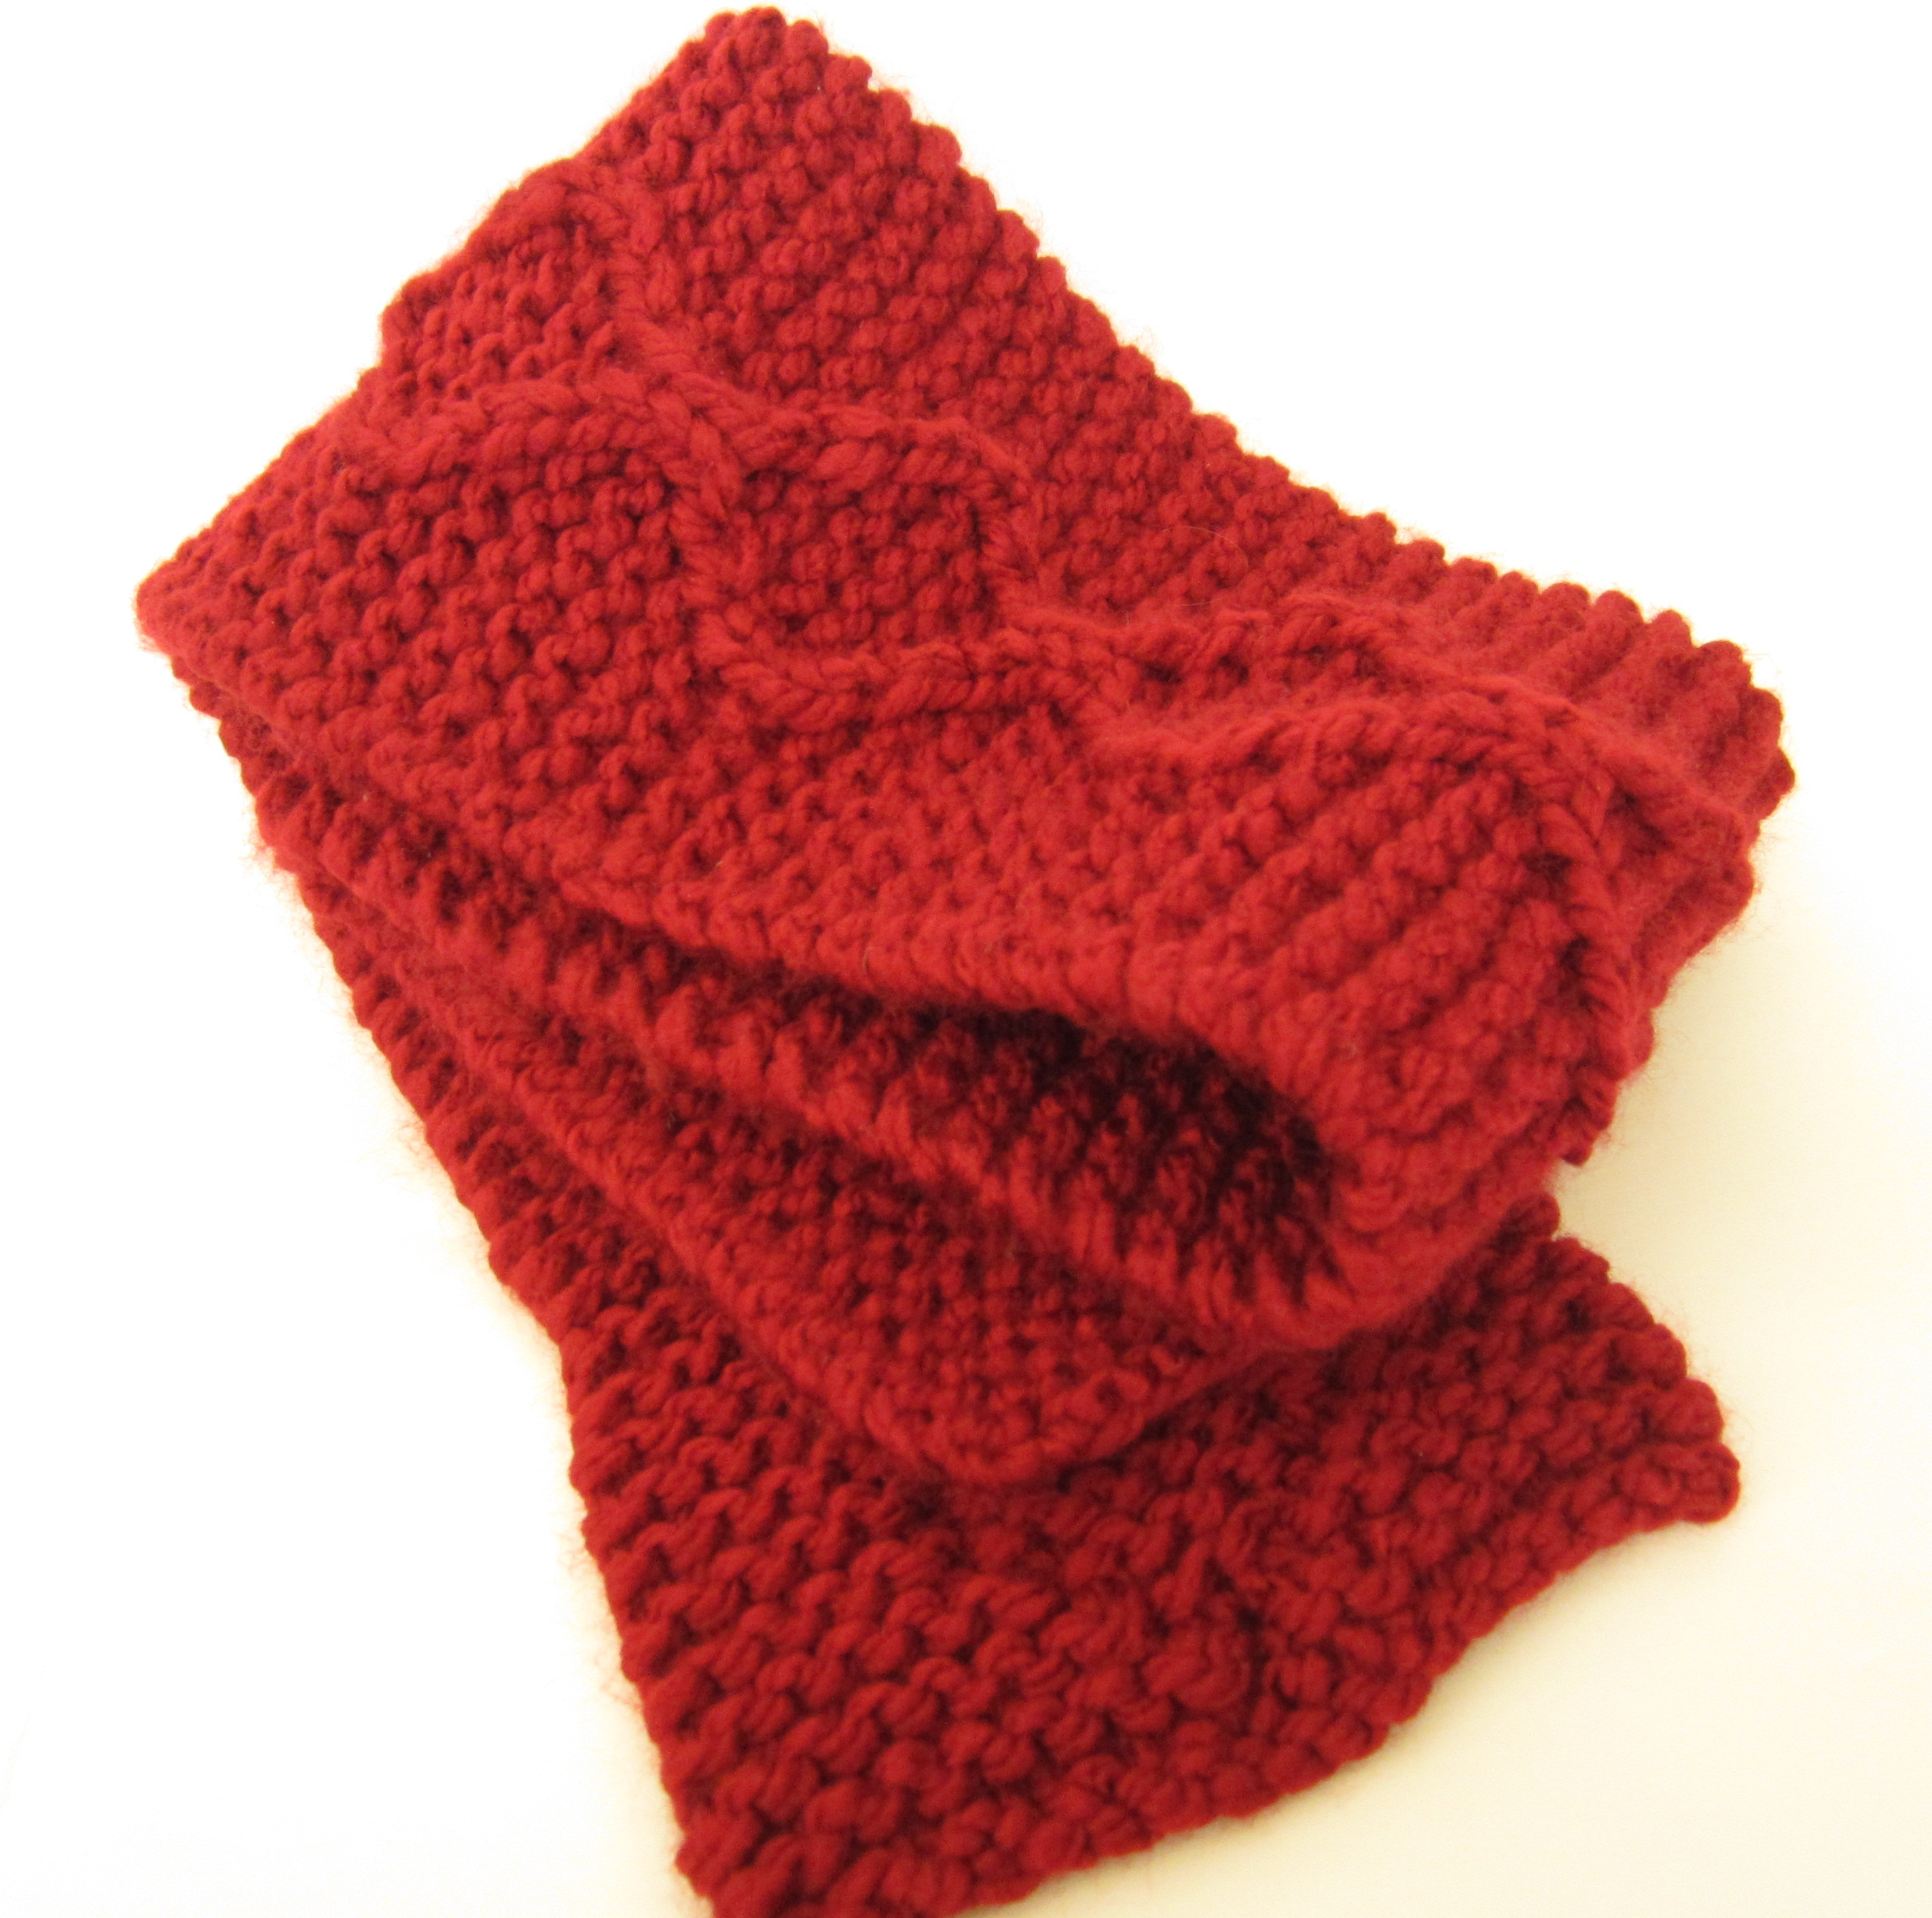 Cable Knit Pattern Free : Quick Free Knitting Patterns